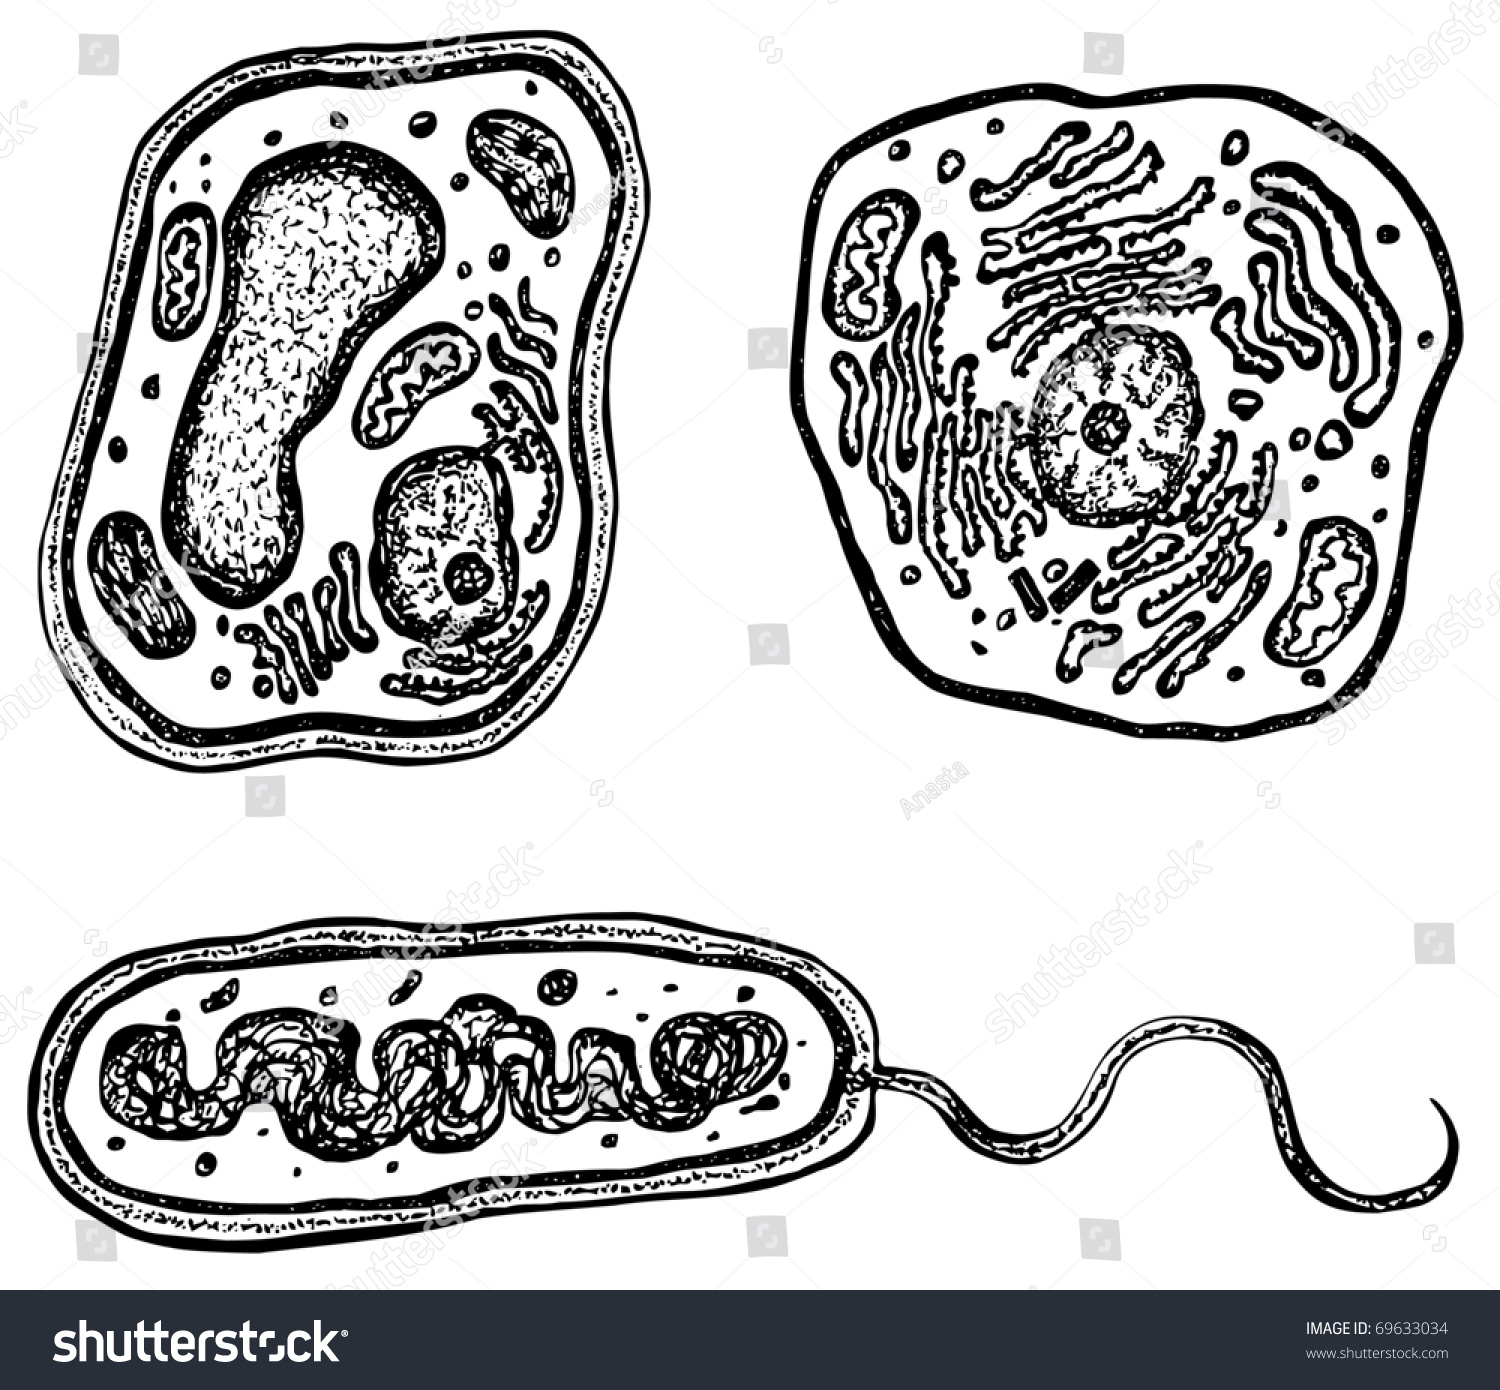 Plant Animal Bacteria Cells Organelles Each Stock Vector Royalty Prokaryotic Vs Eukaryotic Tattoo Pictures And With Cell On Its Own Layer